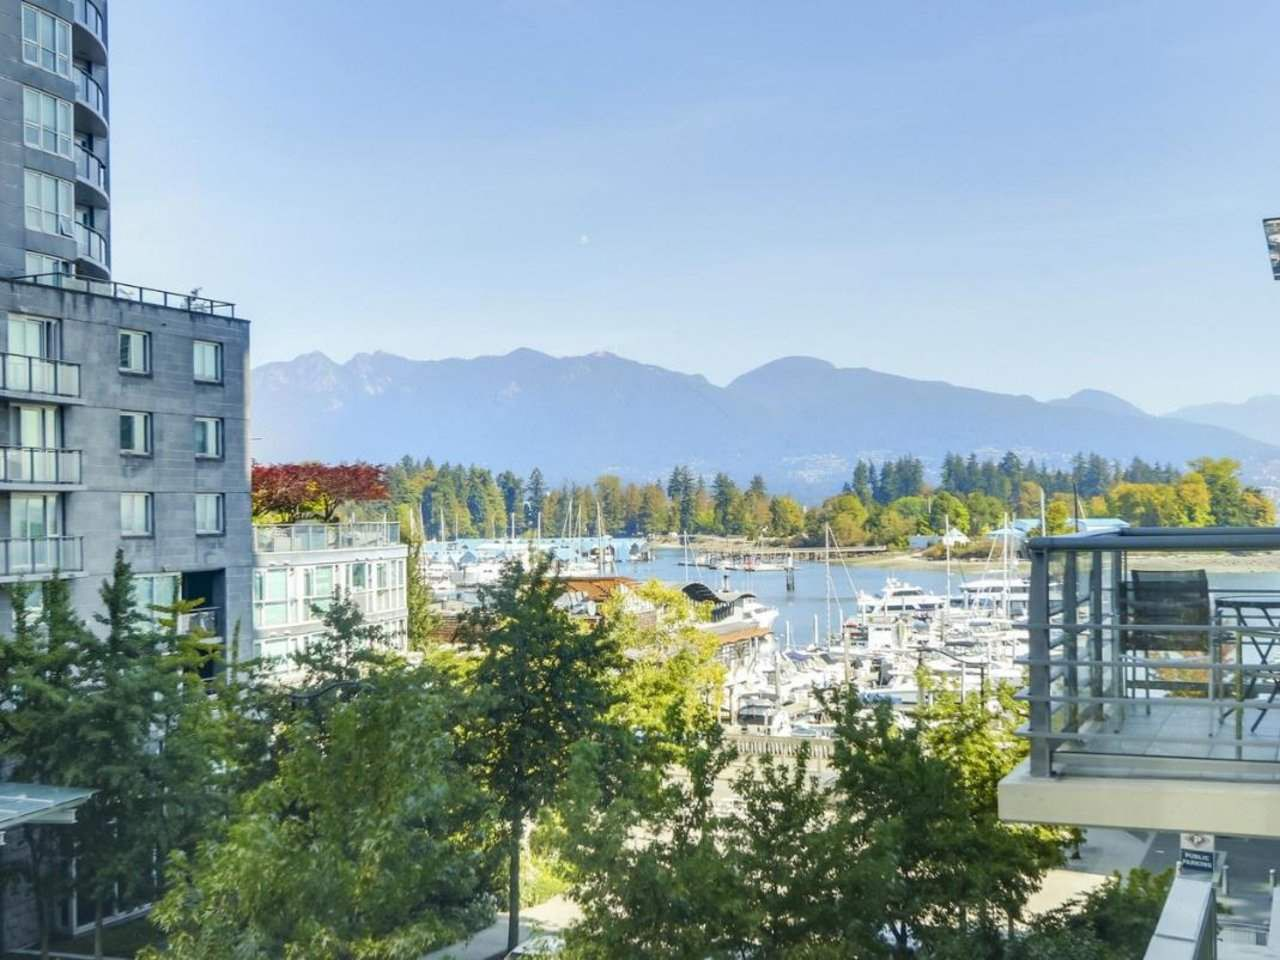 Main Photo: 406 590 NICOLA STREET in Vancouver: Coal Harbour Condo for sale (Vancouver West)  : MLS®# R2302772